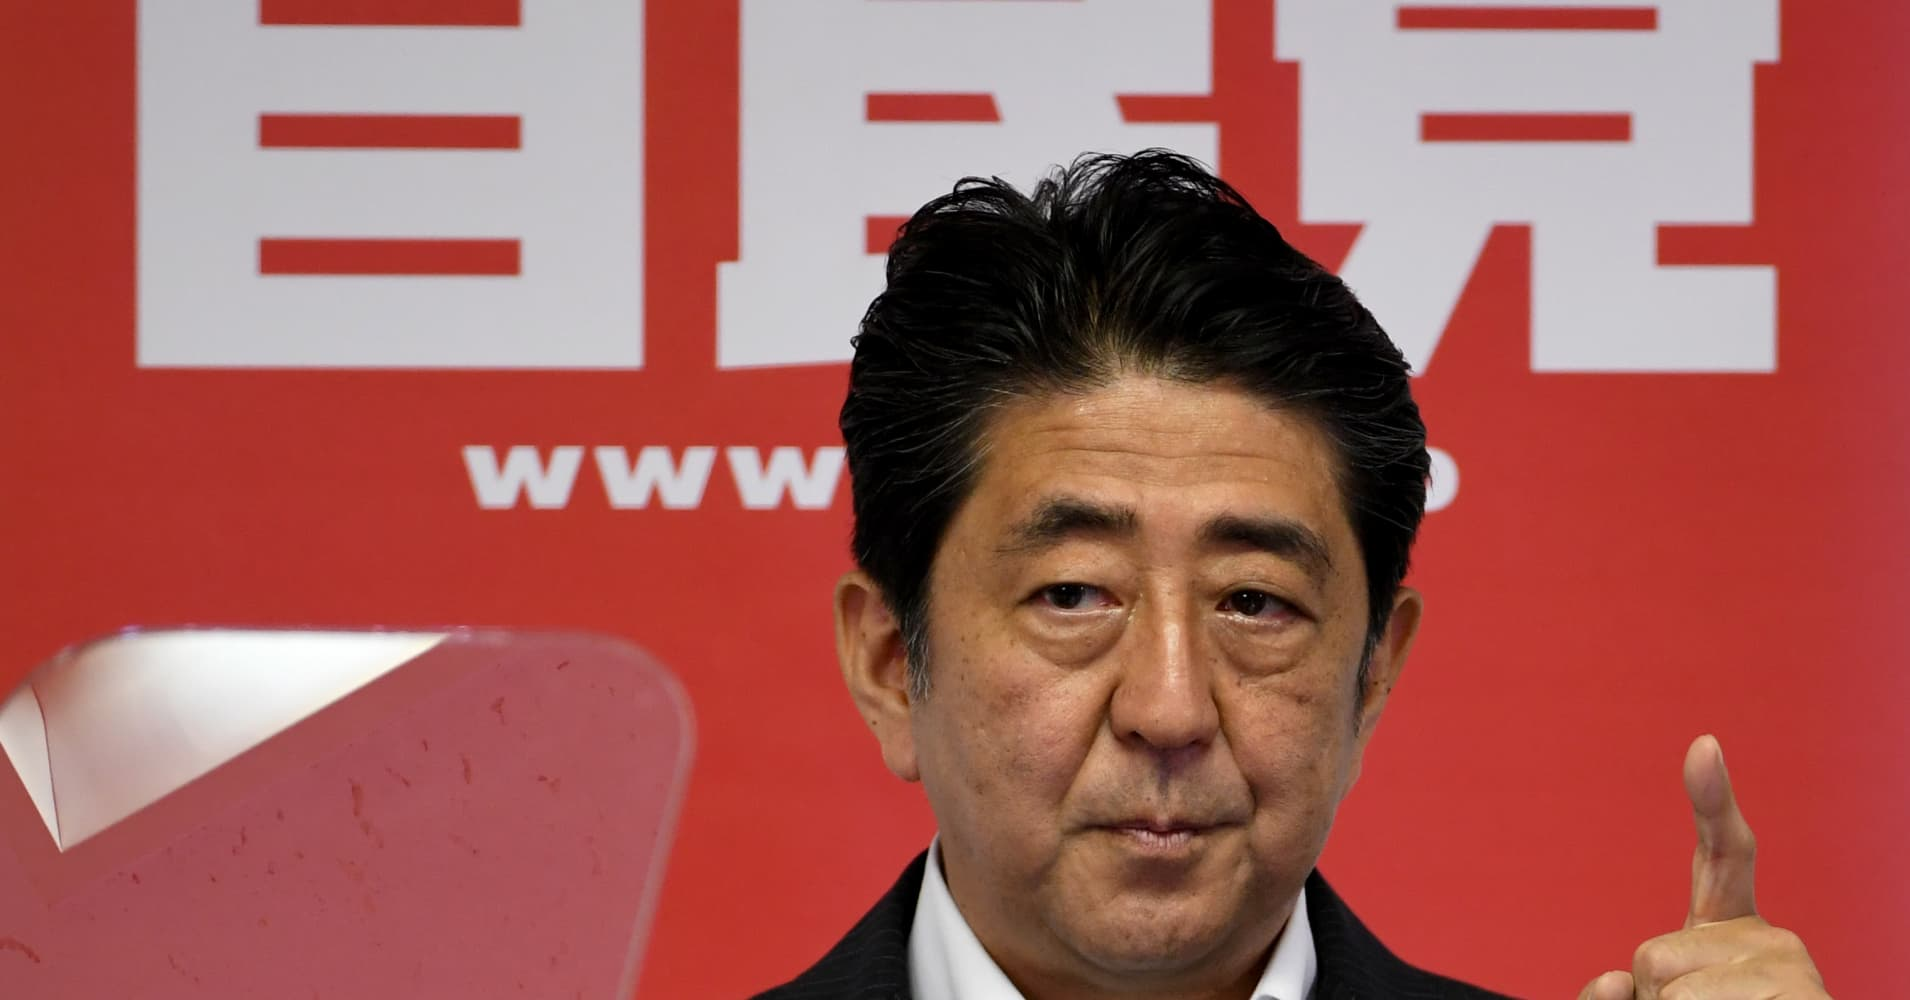 Japan's Abe orders new stimulus after election win, as machinery orders 'stall'